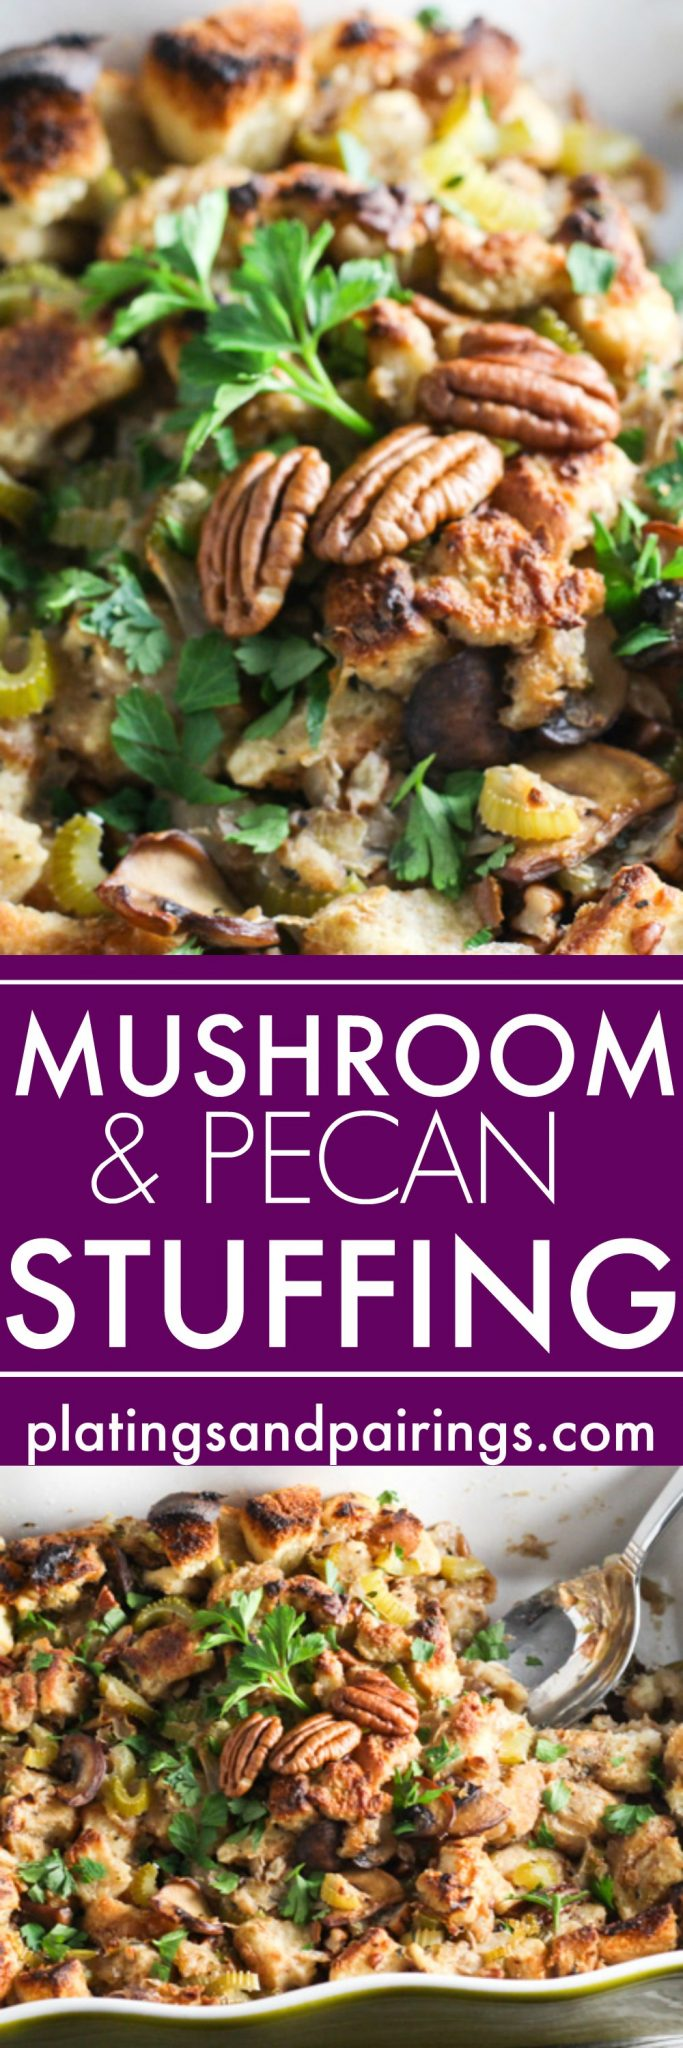 This Mushroom and Pecan Stuffing with Fresh Herbs is a family favorite recipe for Thanksgiving! Includes instructions for baking the stuffing inside or outside the turkey. | platingsandpairings.com